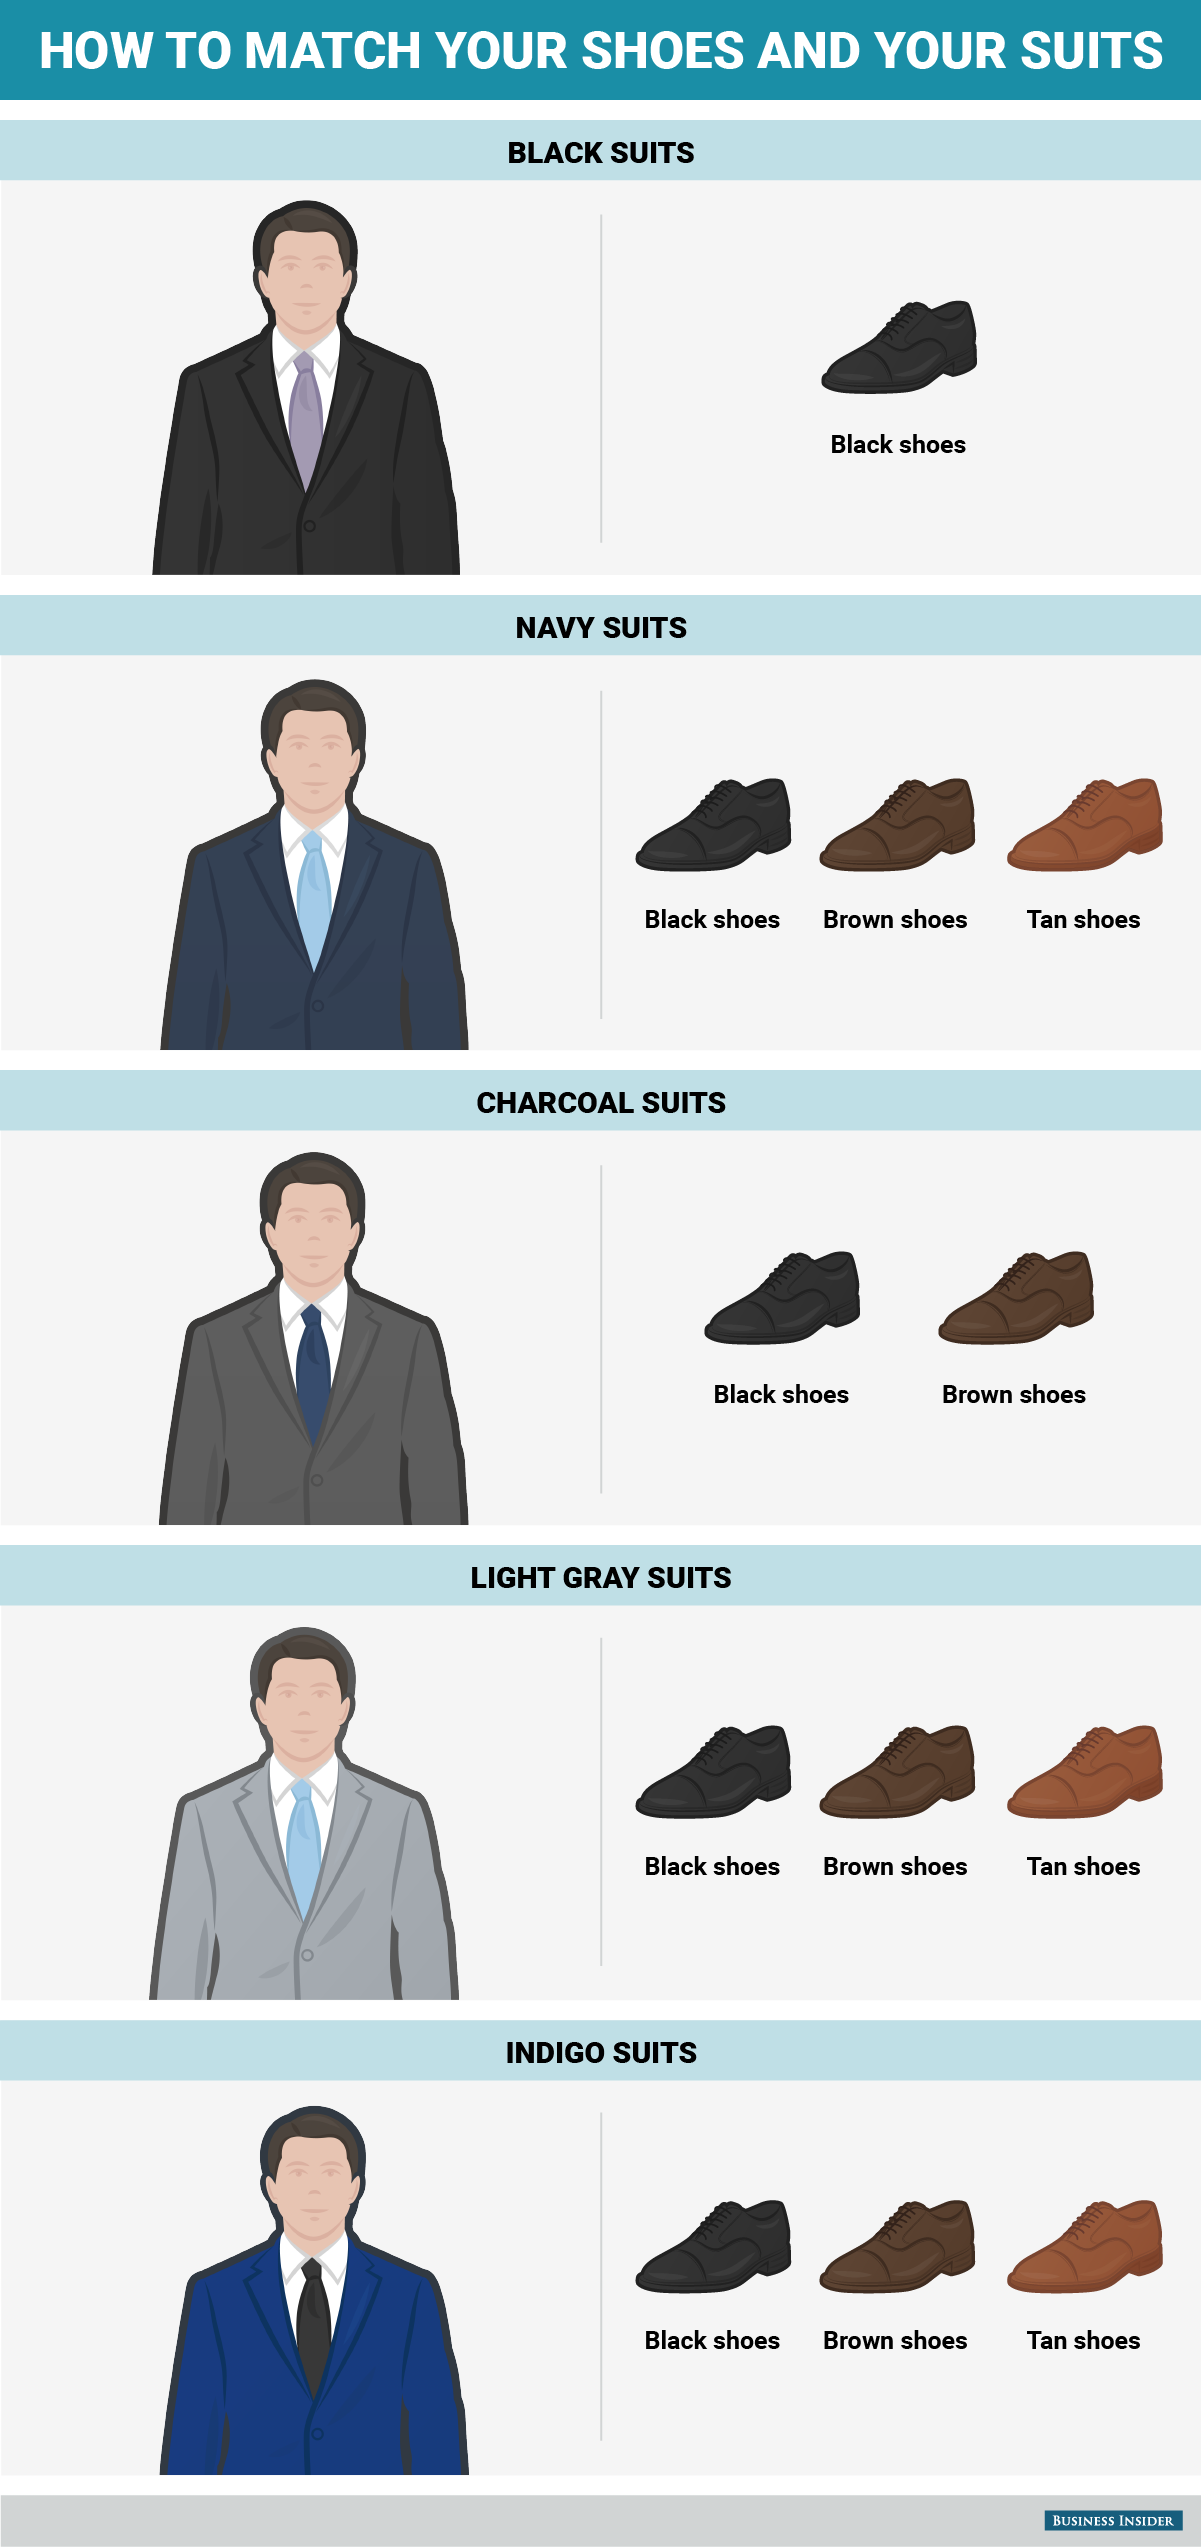 bi-graphics_how-to-match-your-suit-to-your-shoes.png